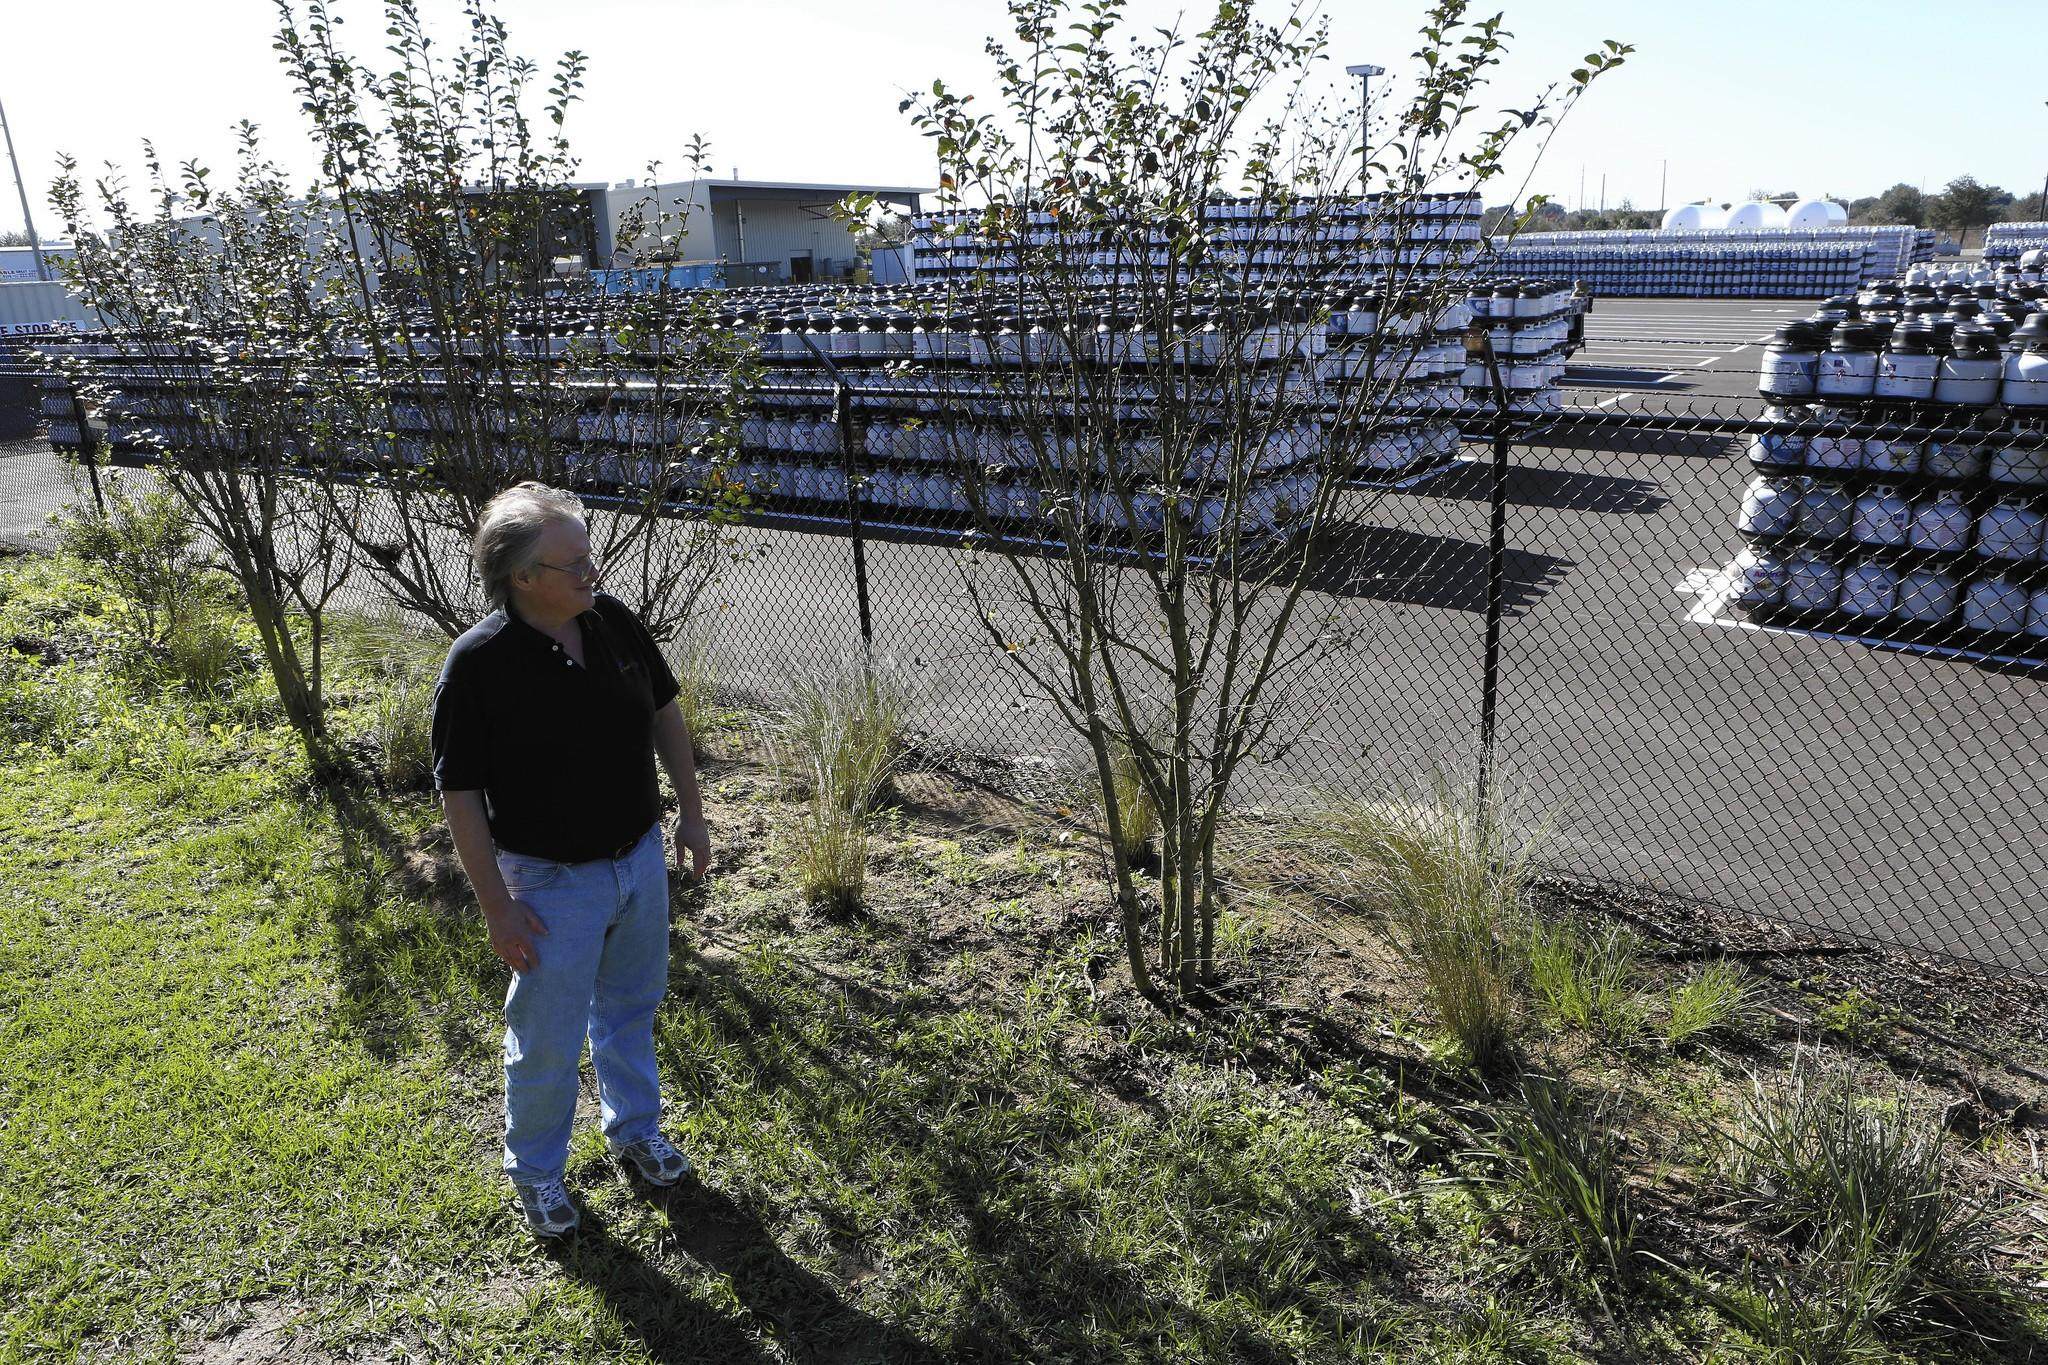 Duane Siebert stands in back of his business just feet from the Blue Rhino propane plant, which in December resumed full operations. The plant was damaged by explosions in July.